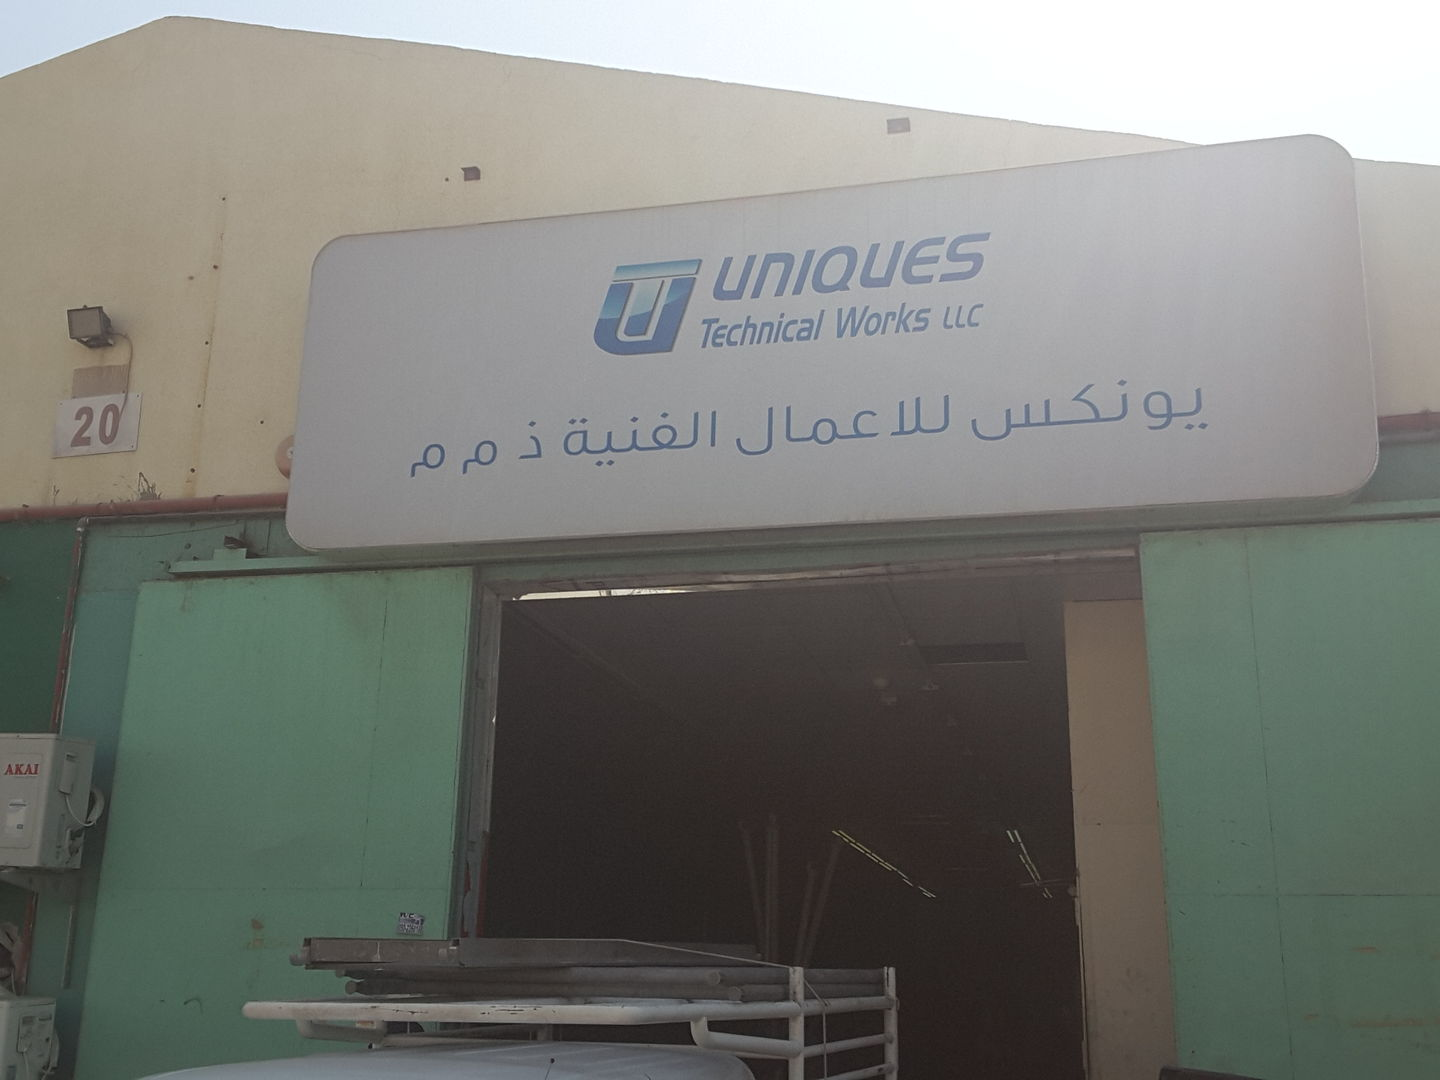 Walif-business-uniques-technical-works